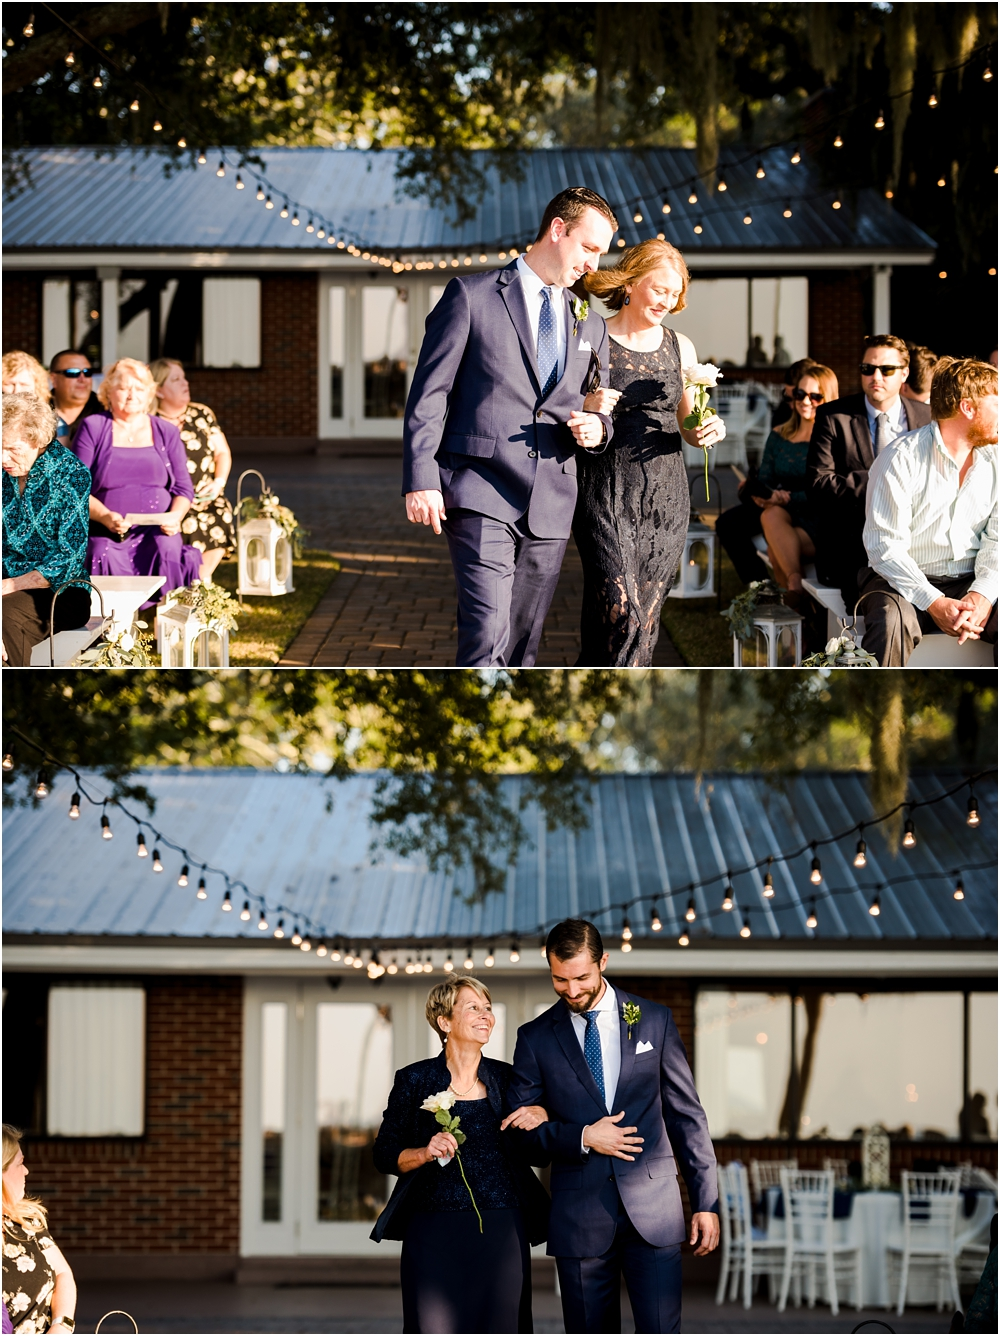 varner-florida-wedding-photographer-30a-panama-city-beach-destin-tallahassee-kiersten-grant-photography-80.jpg